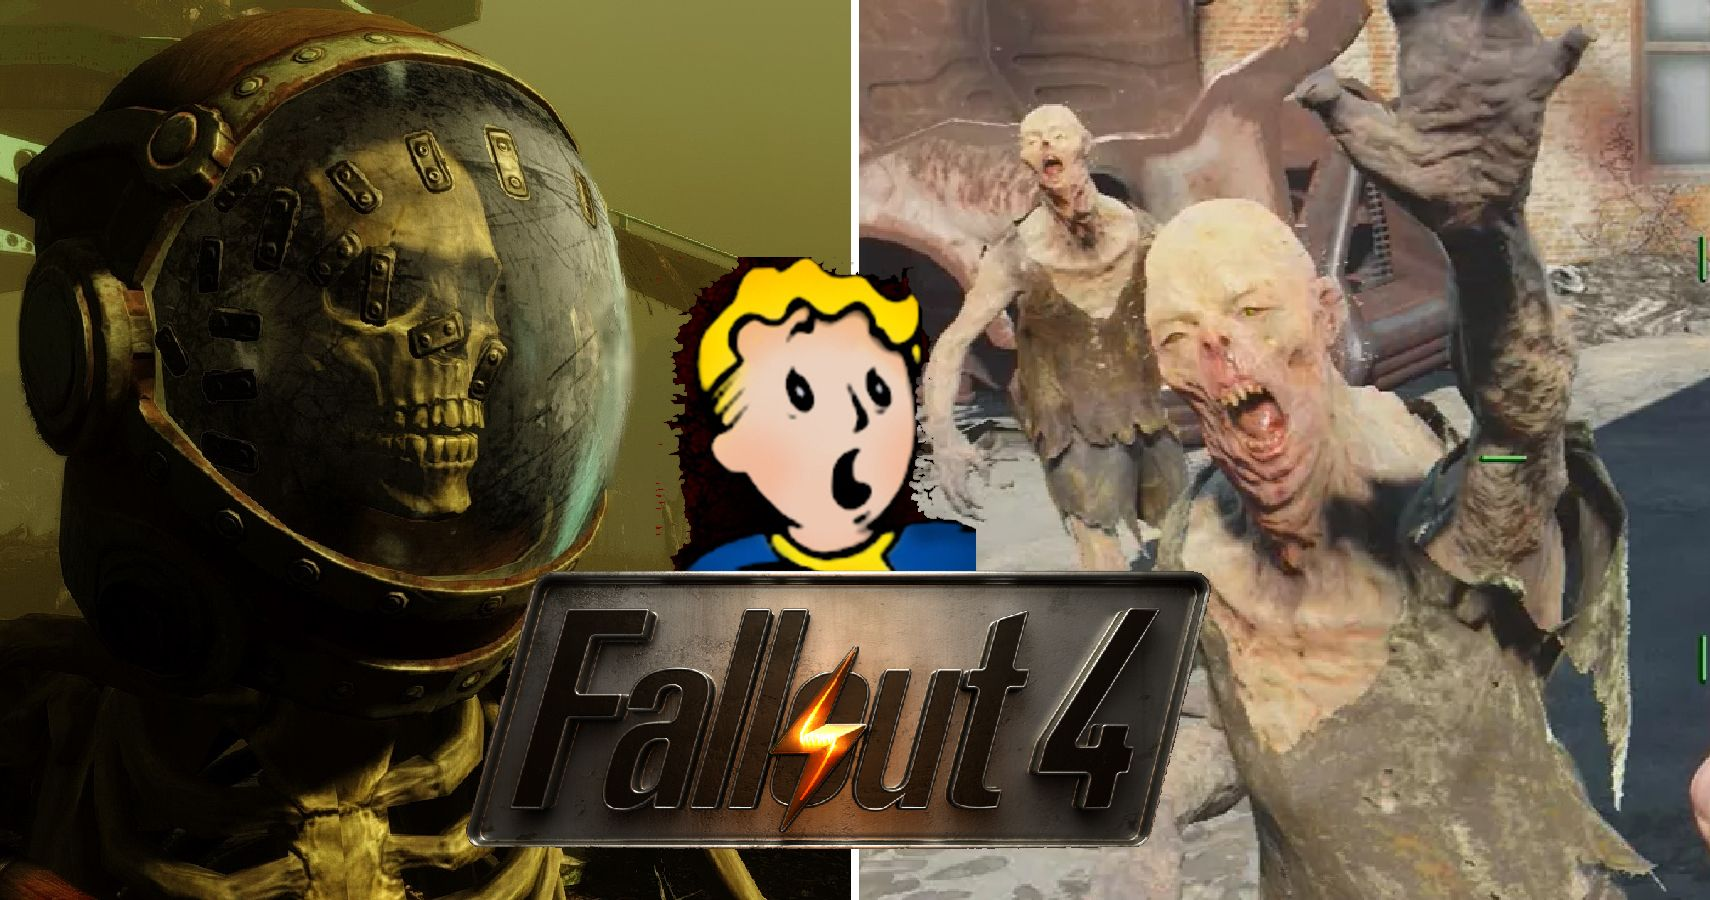 Horrifying: Disturbing Facts You Didn't Know About Fallout 4